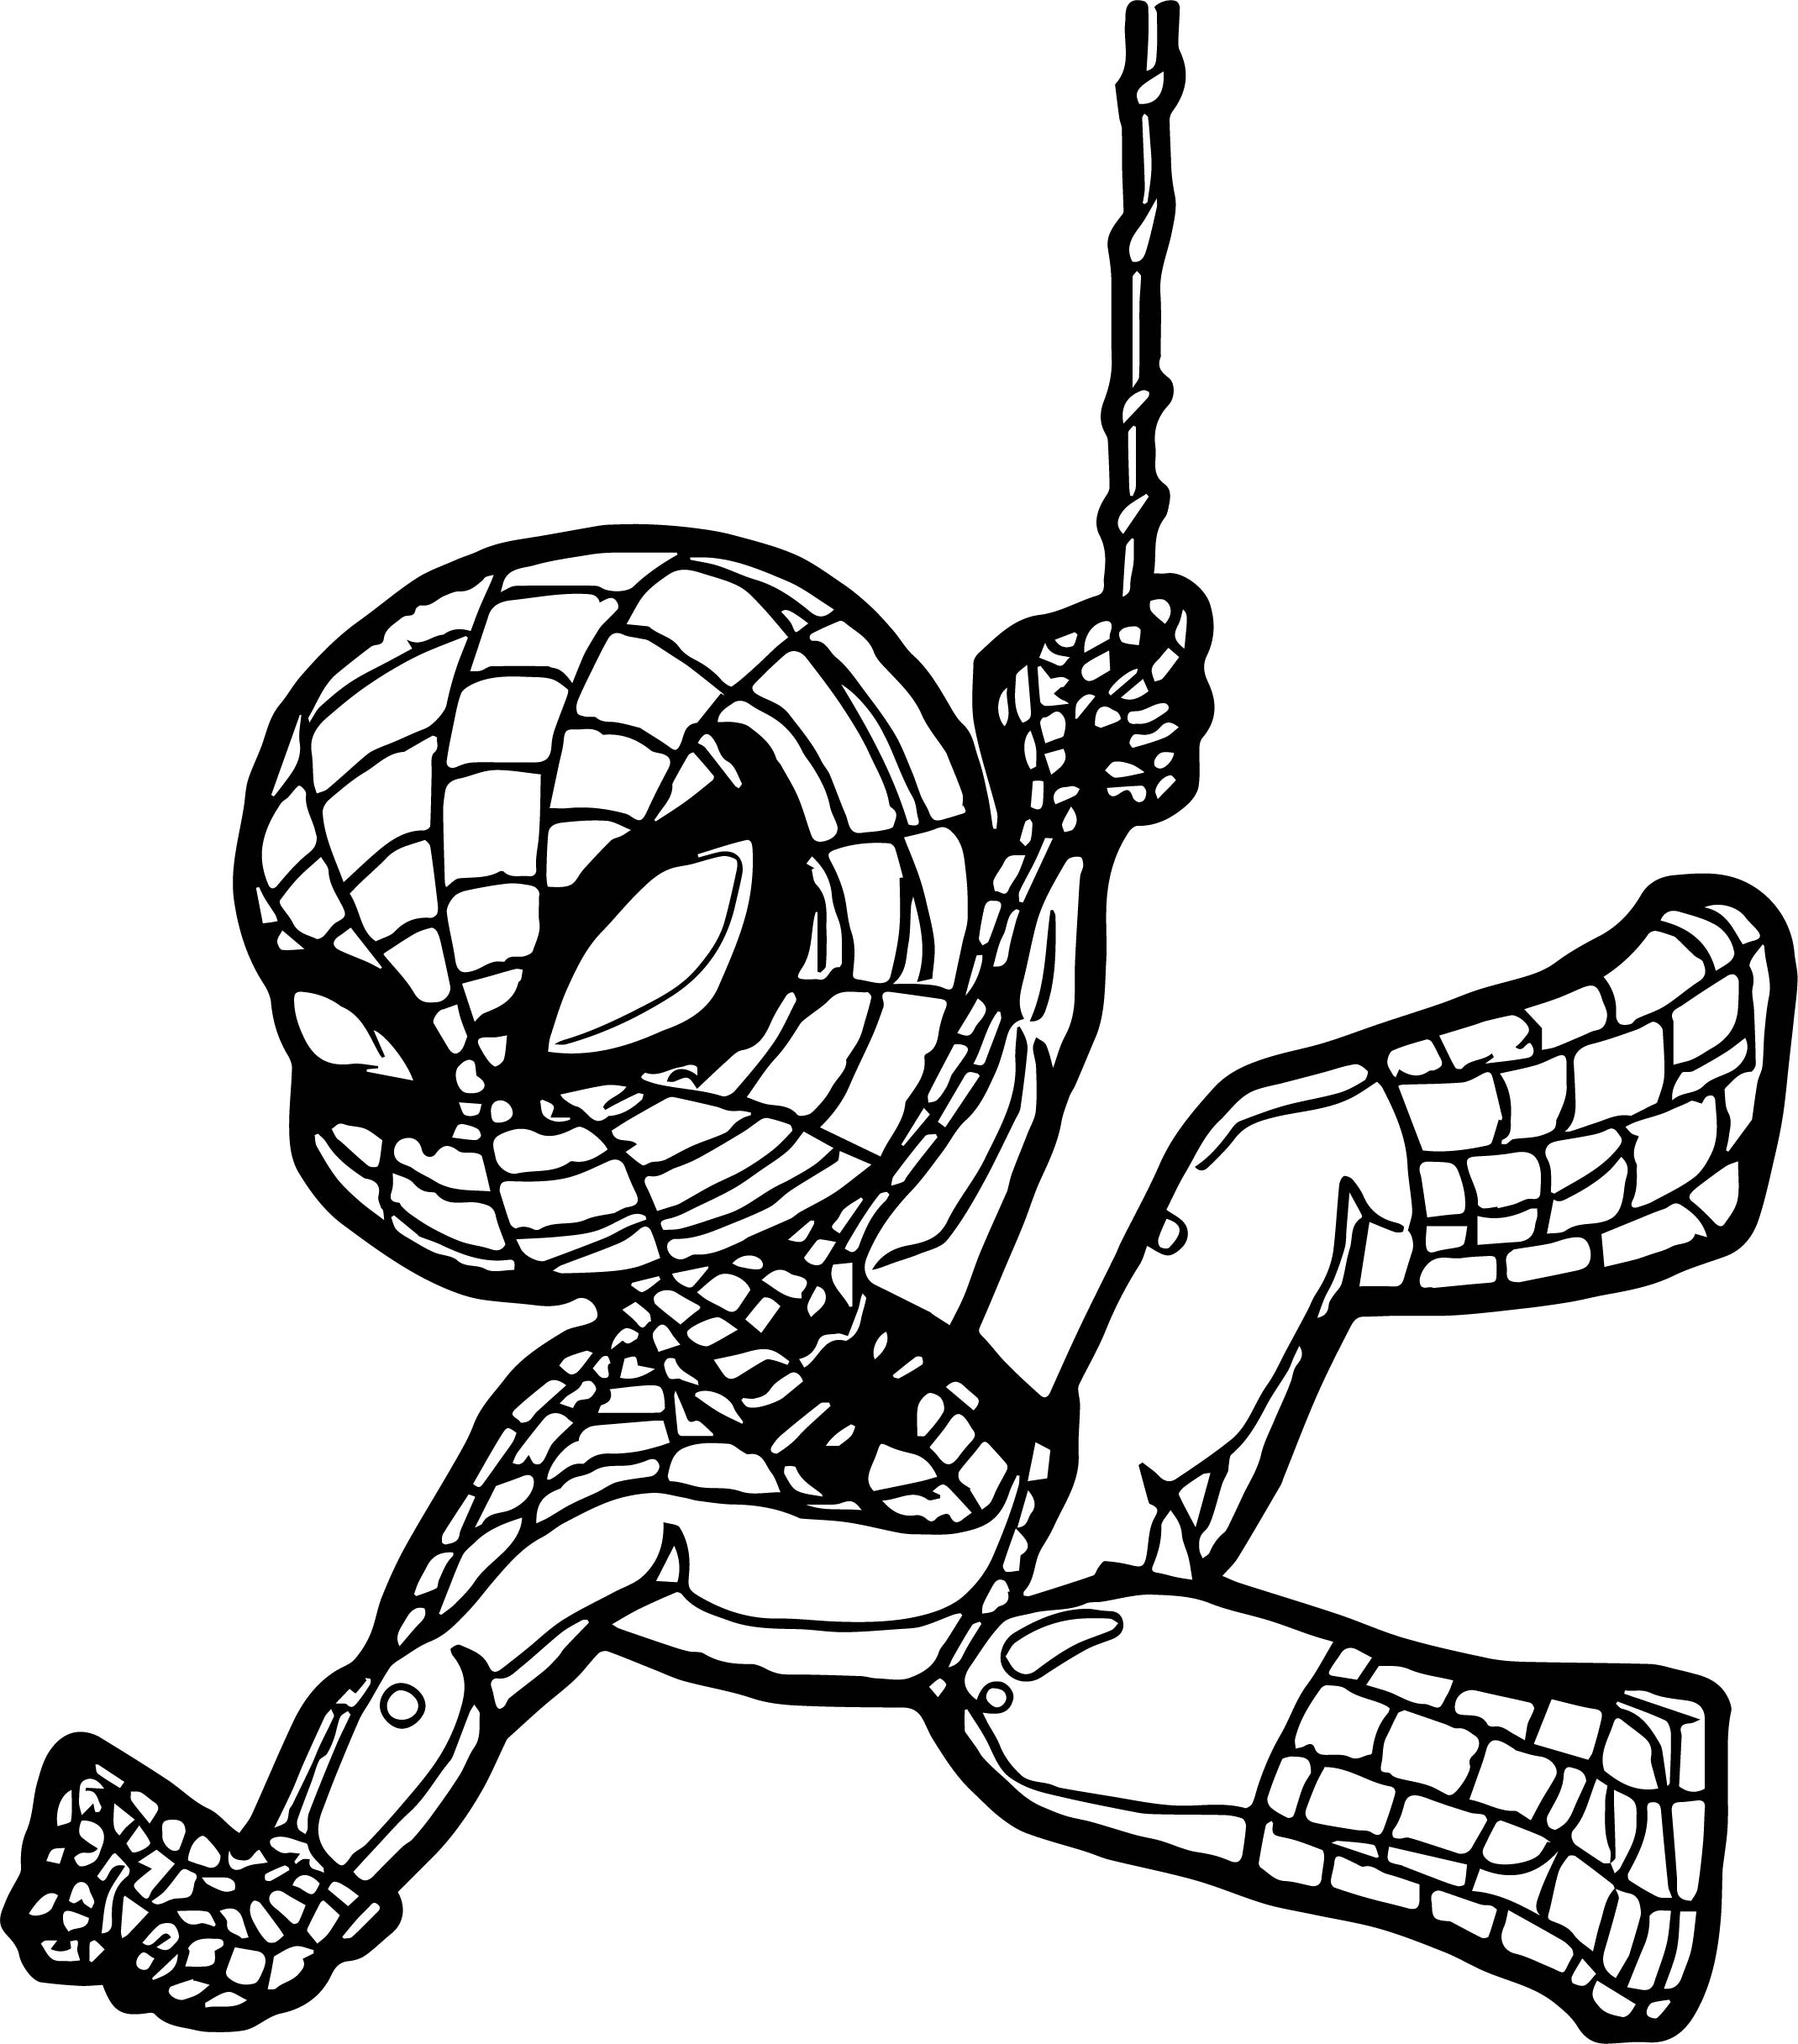 Baby Spiderman Coloring Pages At Getcolorings